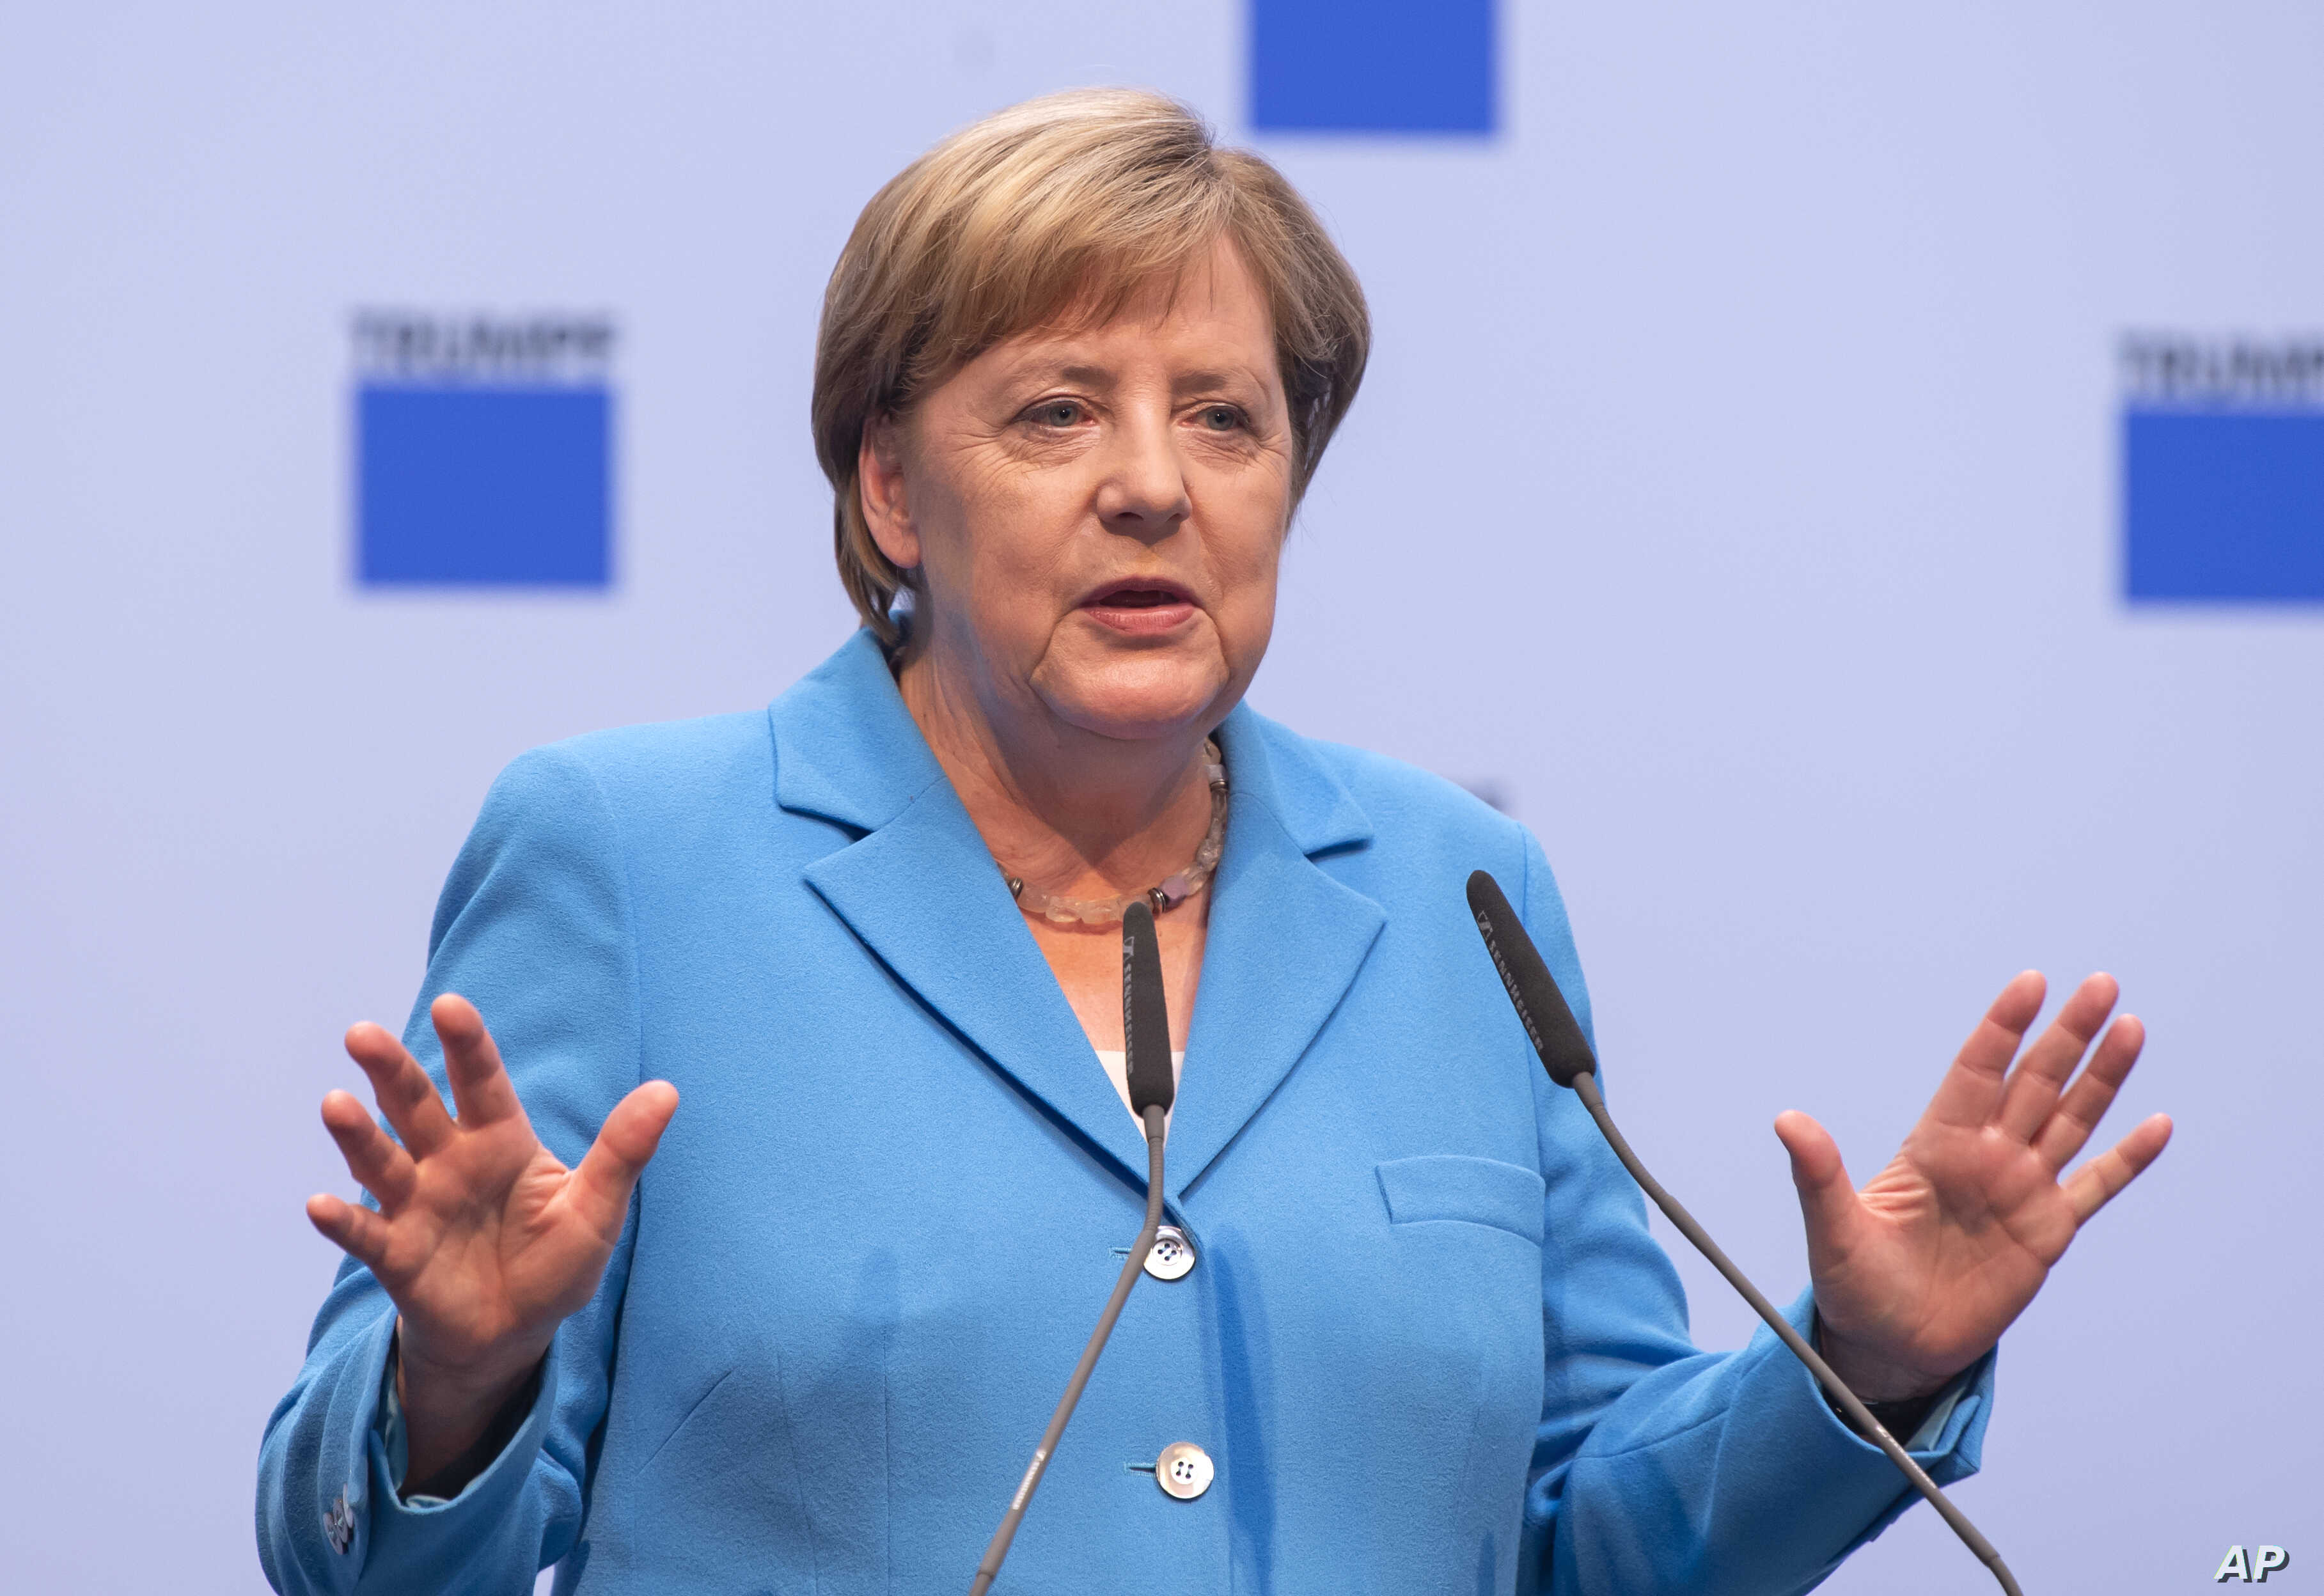 German chancellor Angela Merkel gestures during a discussion with TRUMPF employees in Neukirch, eastern Germany,  Aug. 16, 2018.